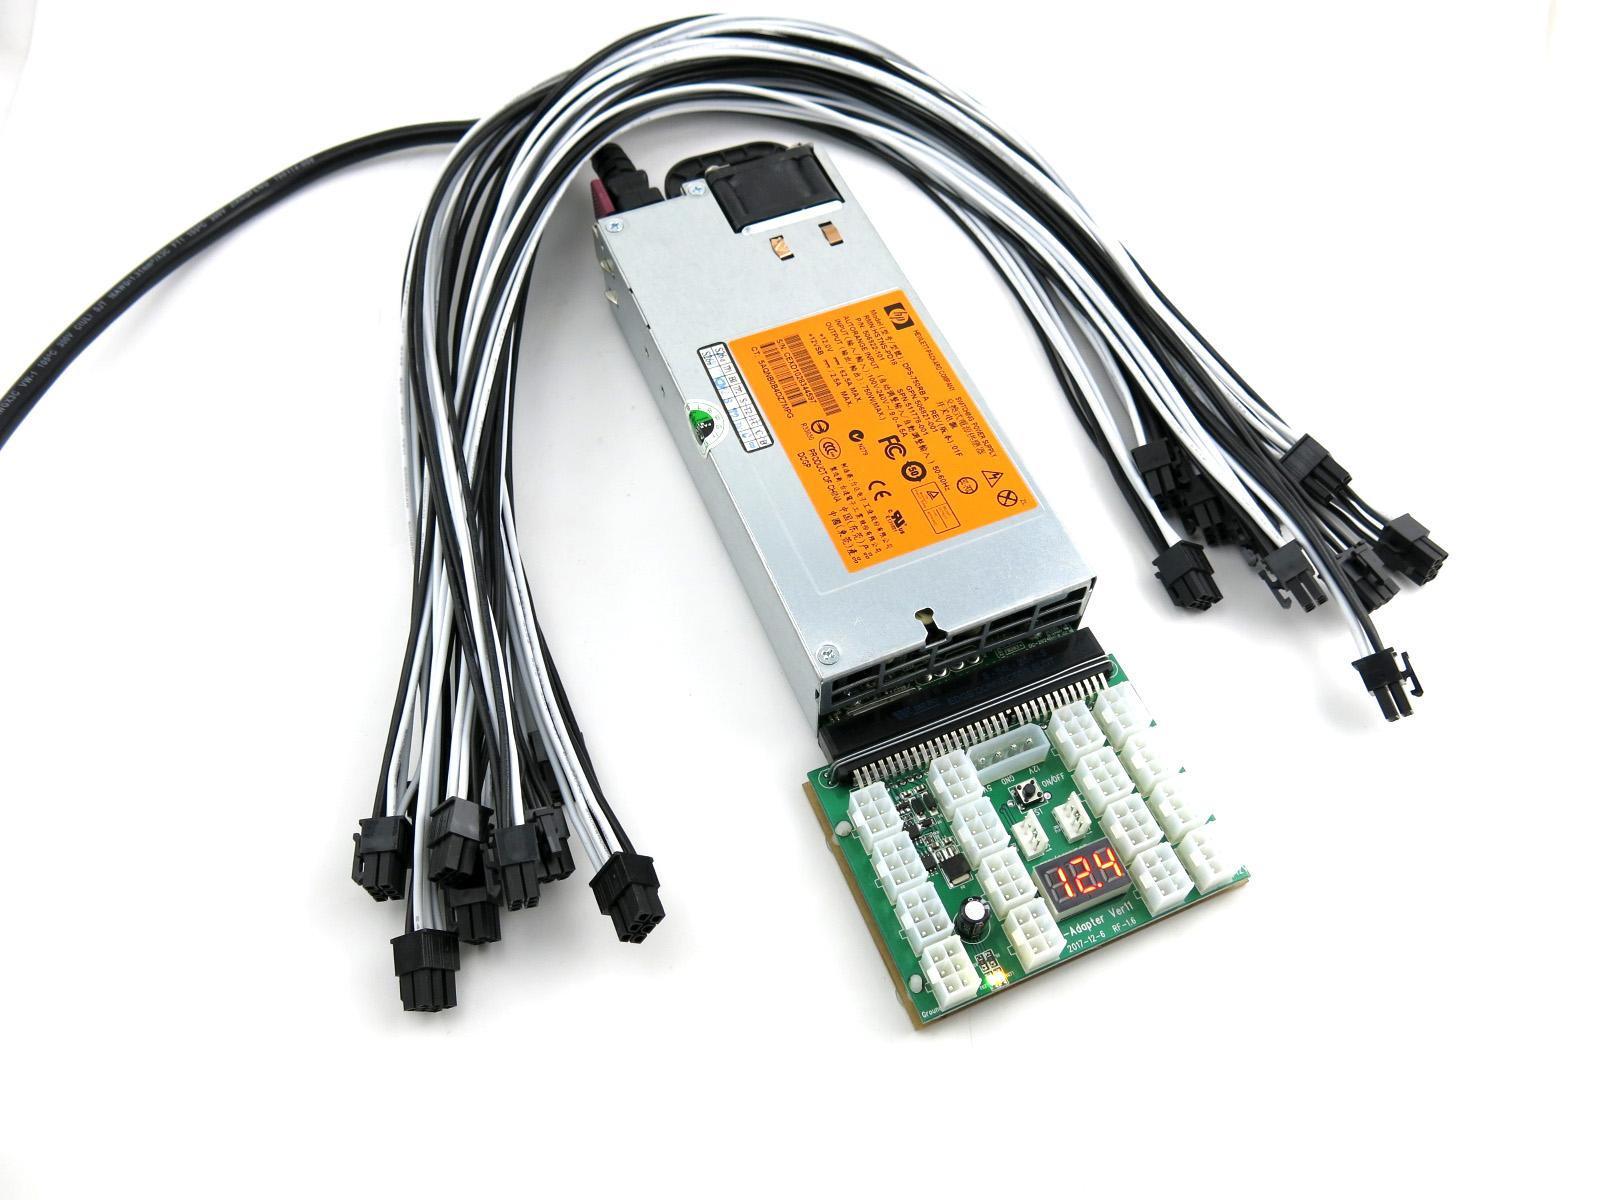 KT-75010SET03-BKX11-Antminer X3 power supply kit